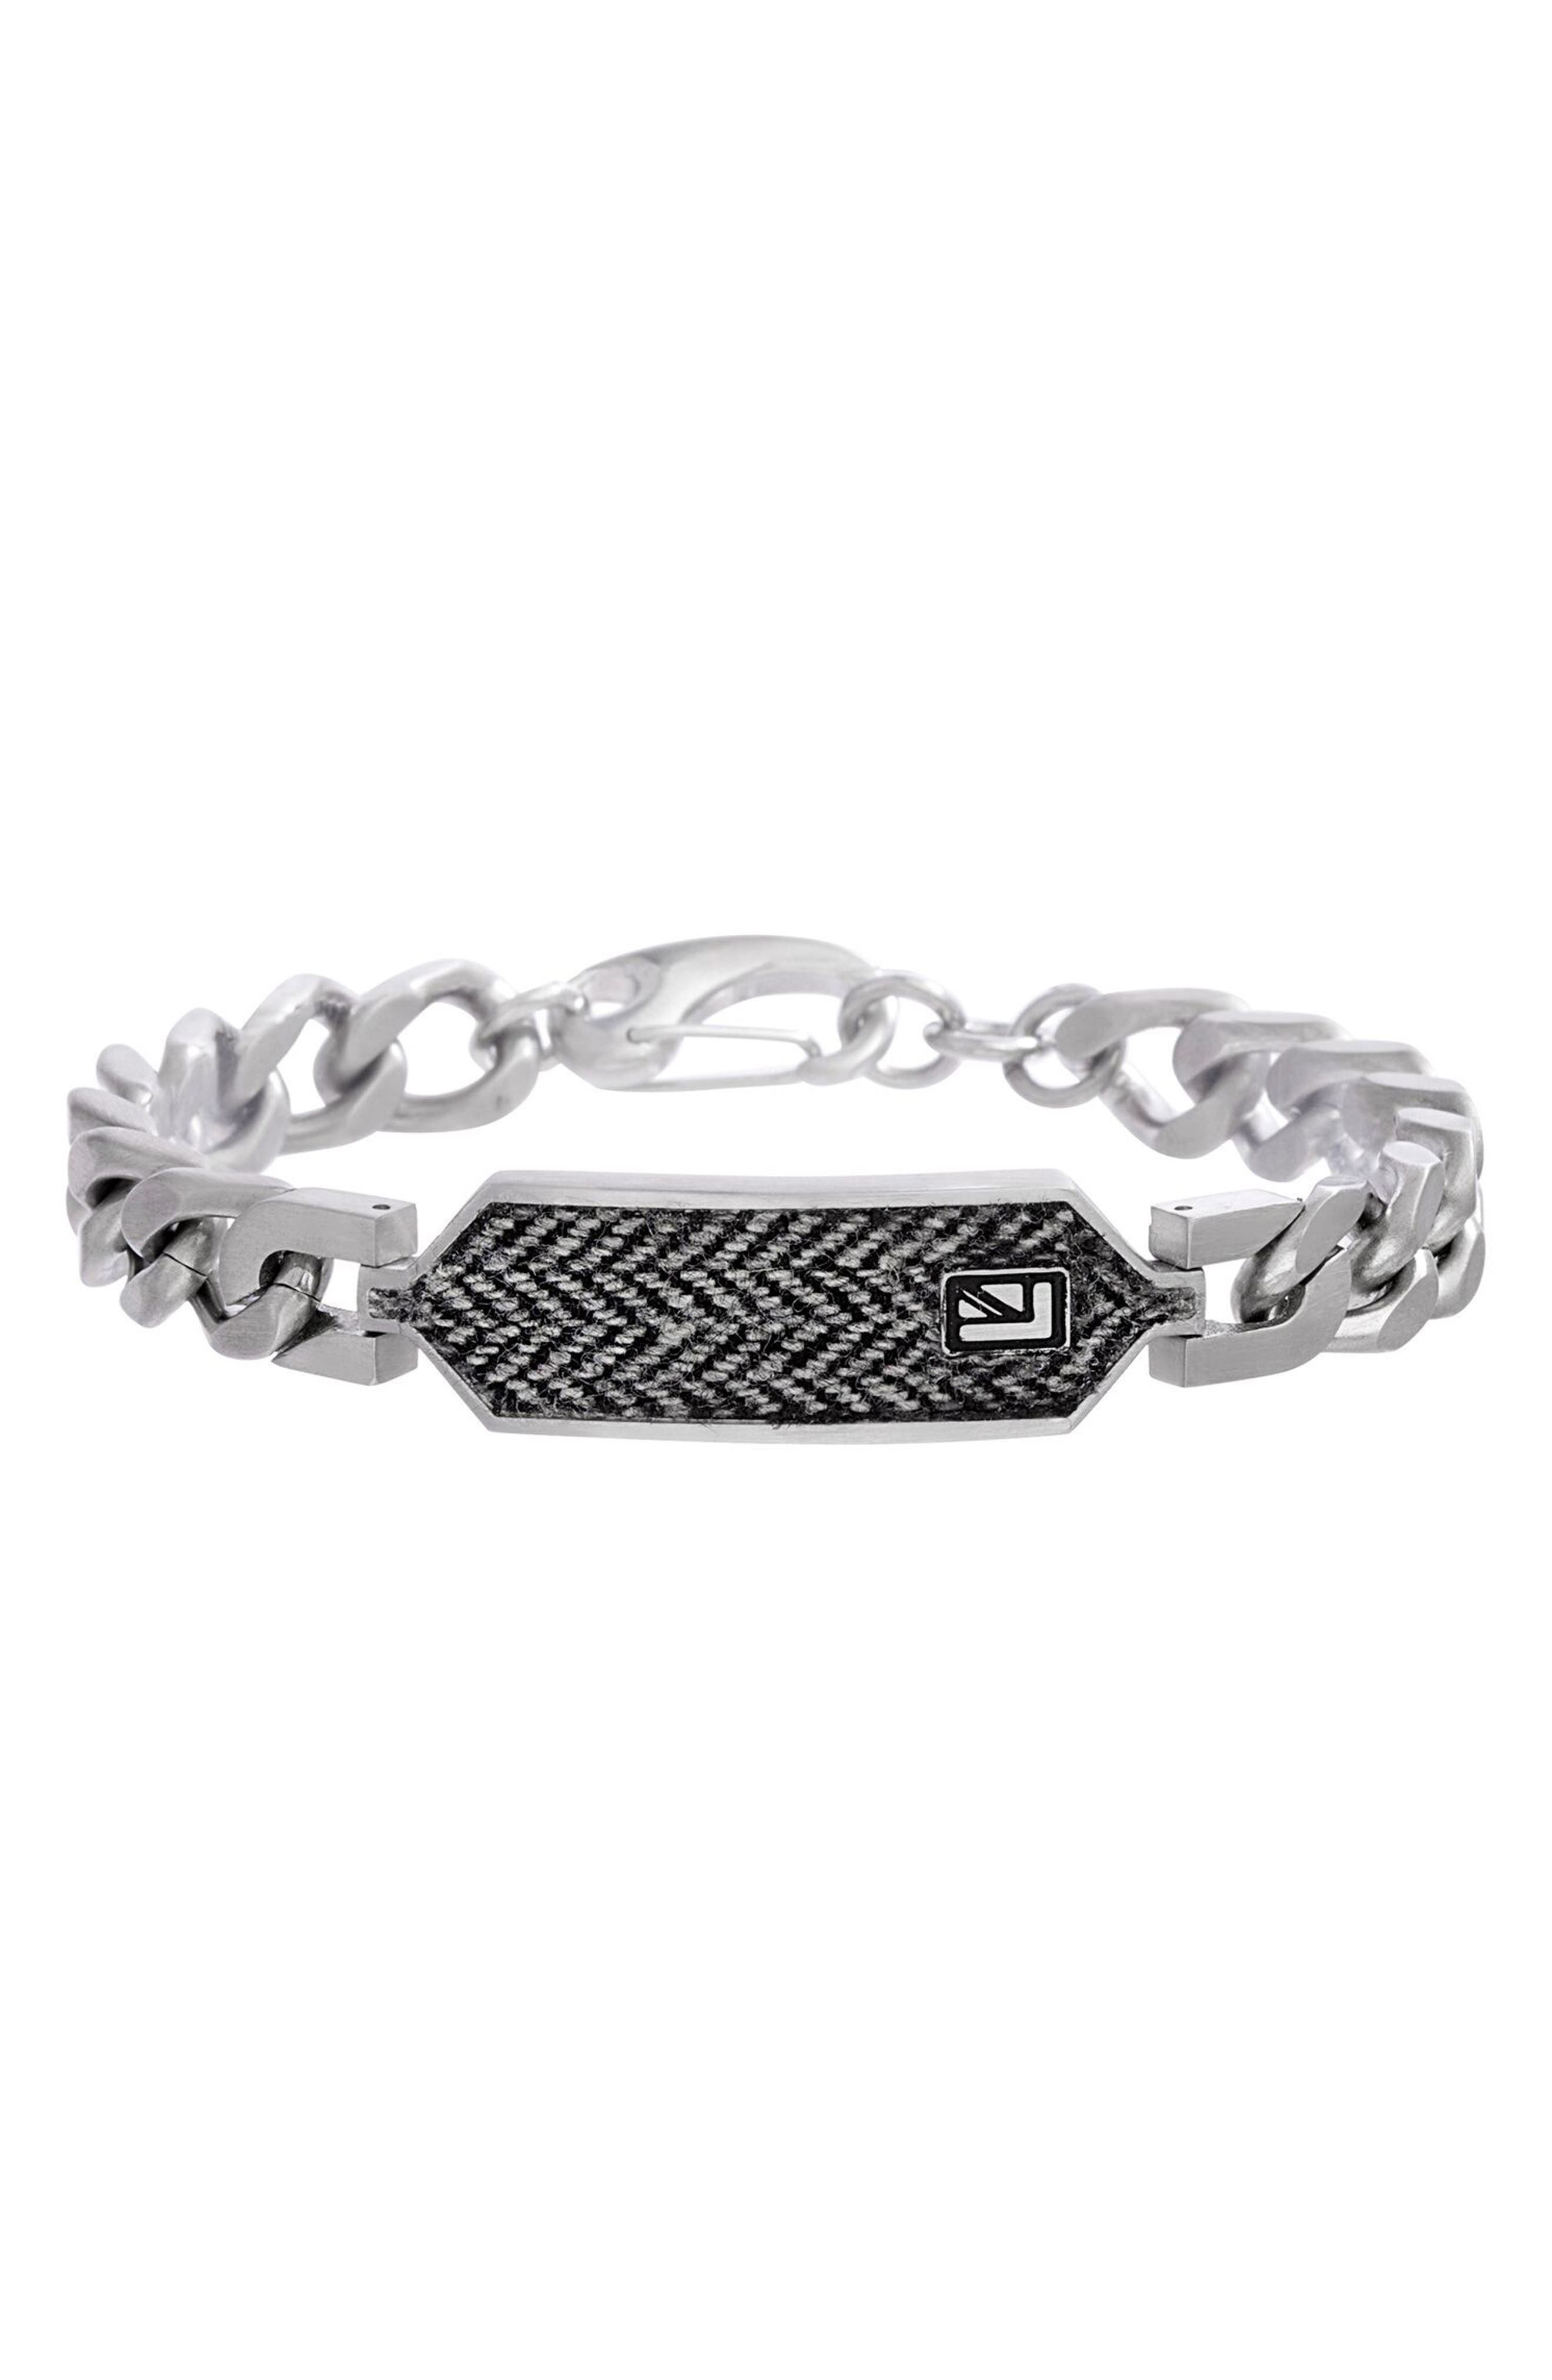 ID Plate Chain Bracelet,                             Main thumbnail 1, color,                             Silver